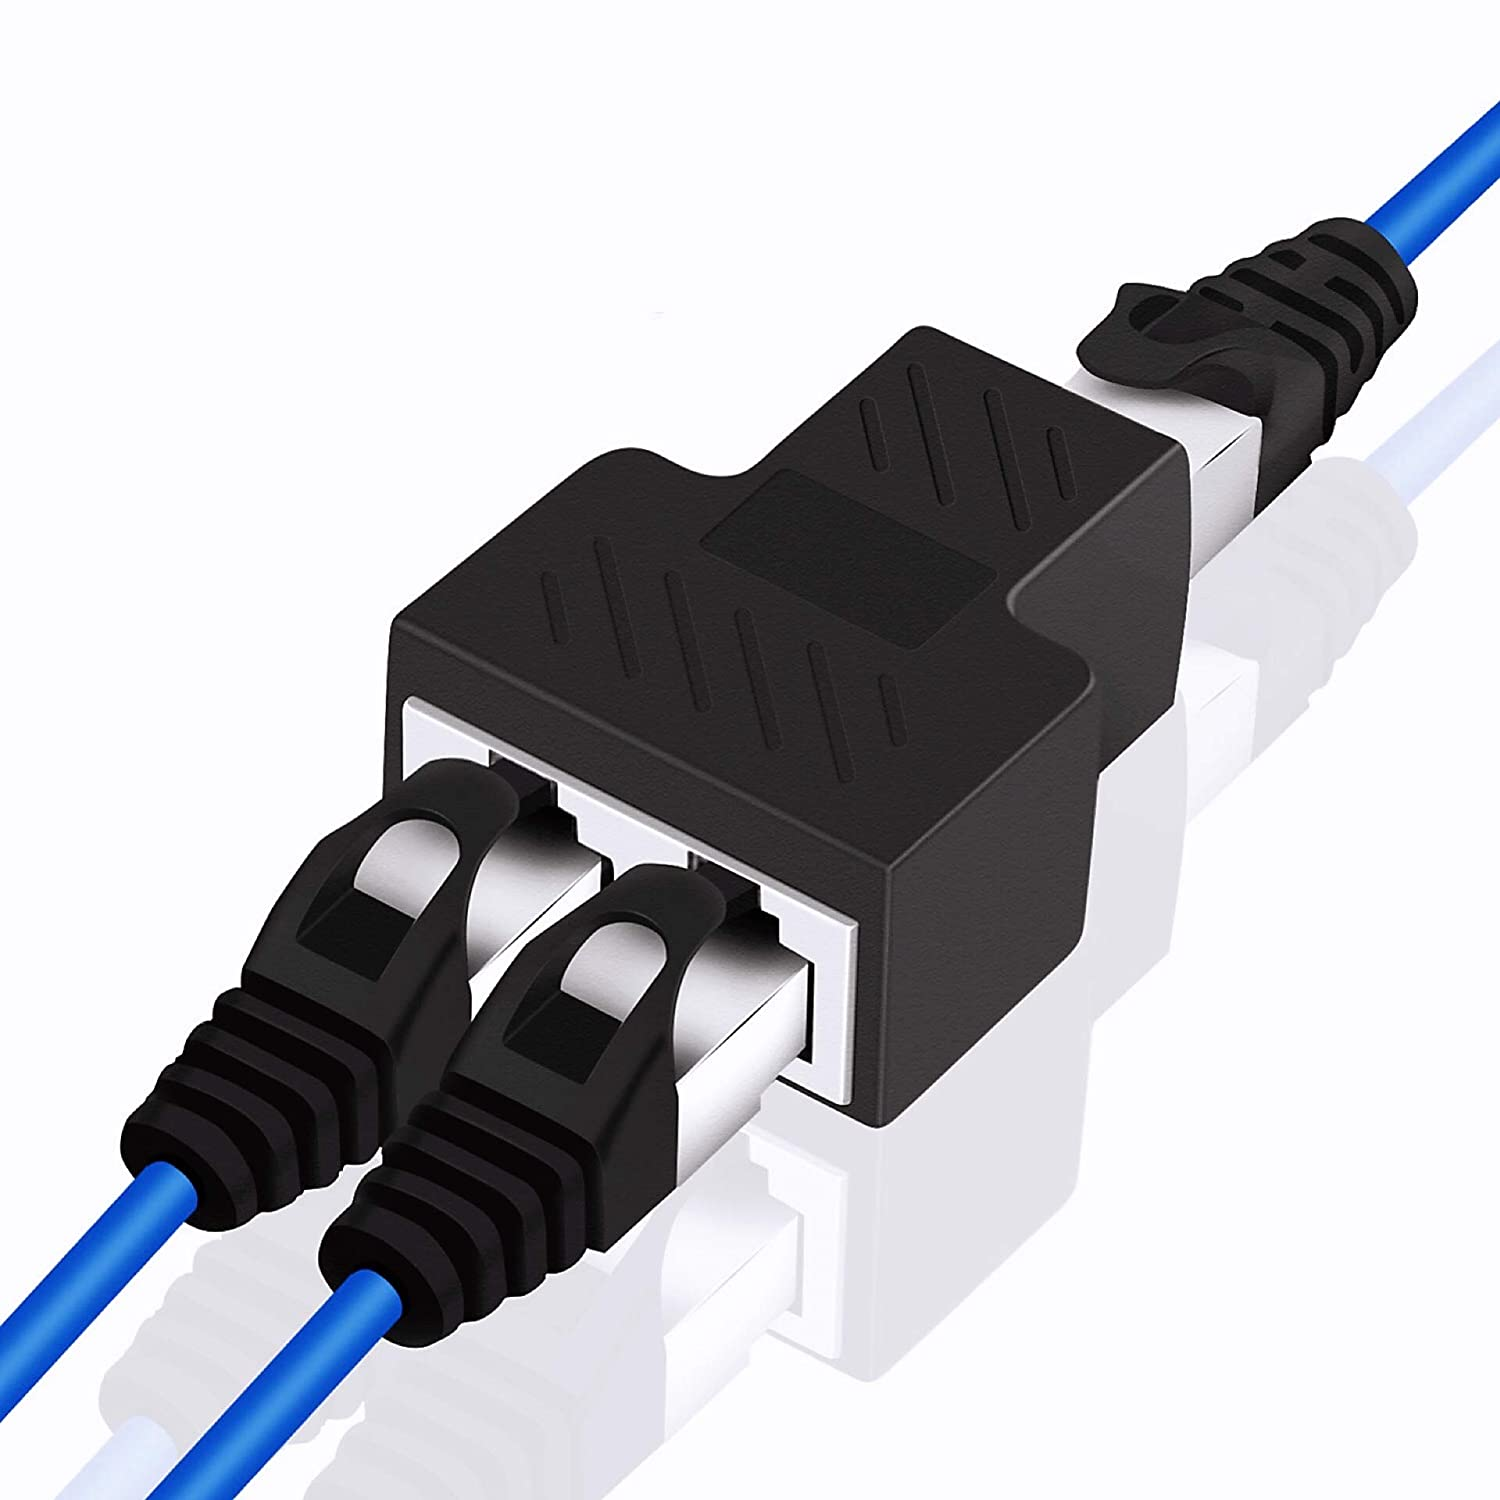 Sale SALE% Max 63% OFF OFF SENHUO RJ45 Ethernet Splitter Connector with Compatible Adapter